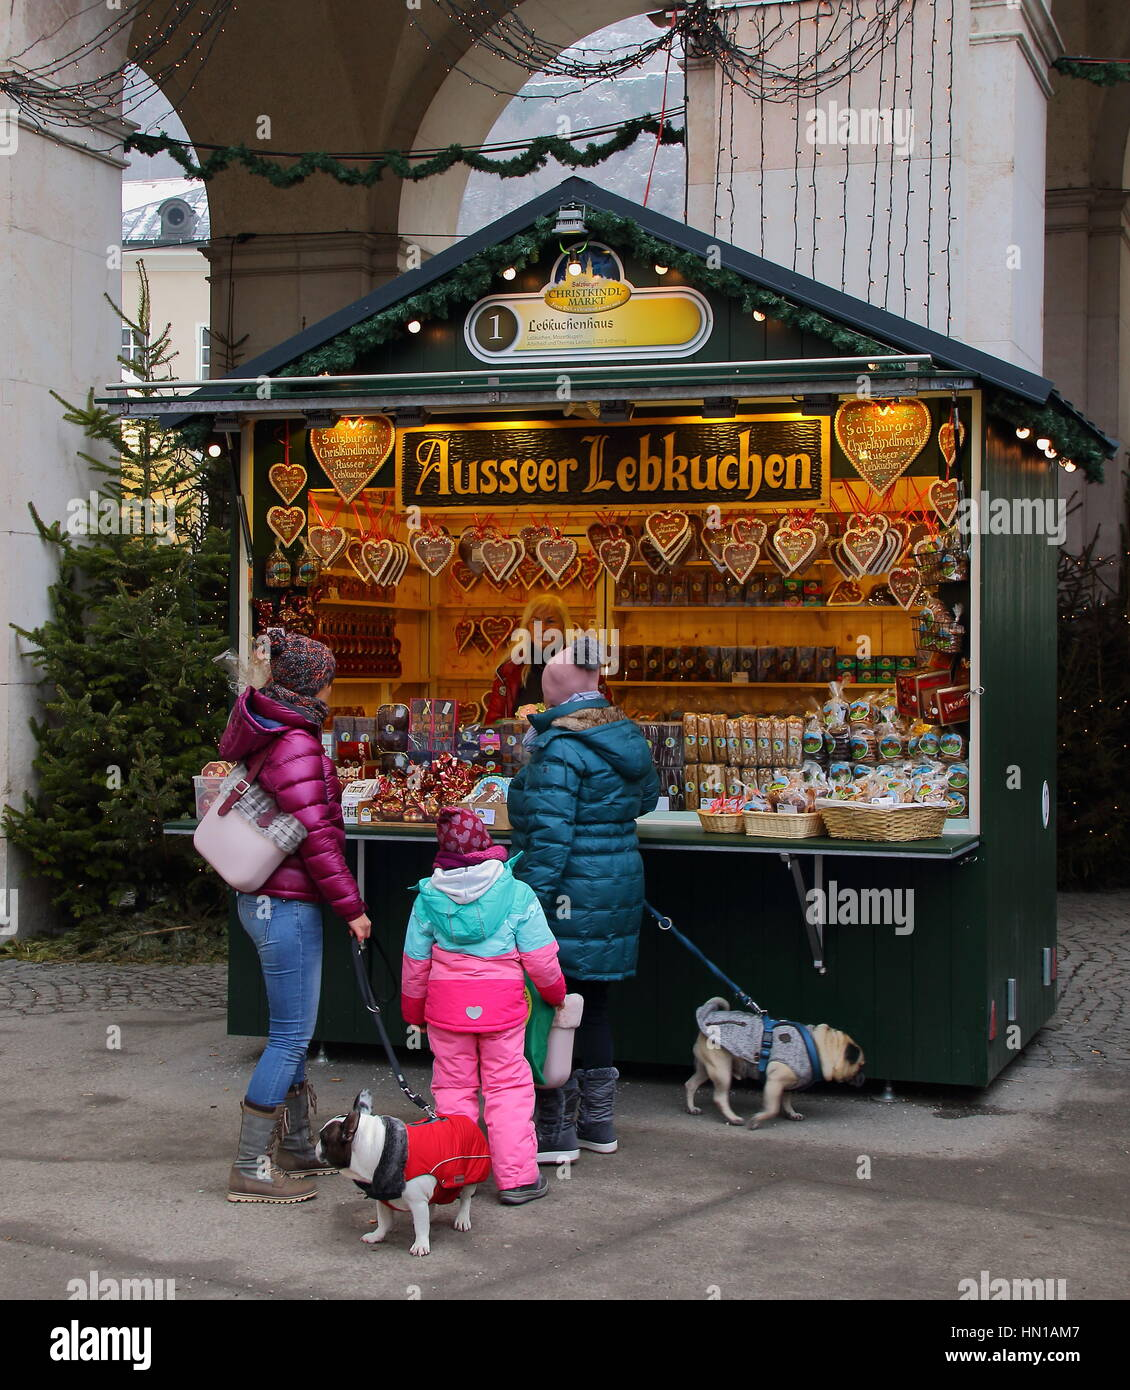 Christmas markets in Europe are an annual celebration - Stock Image